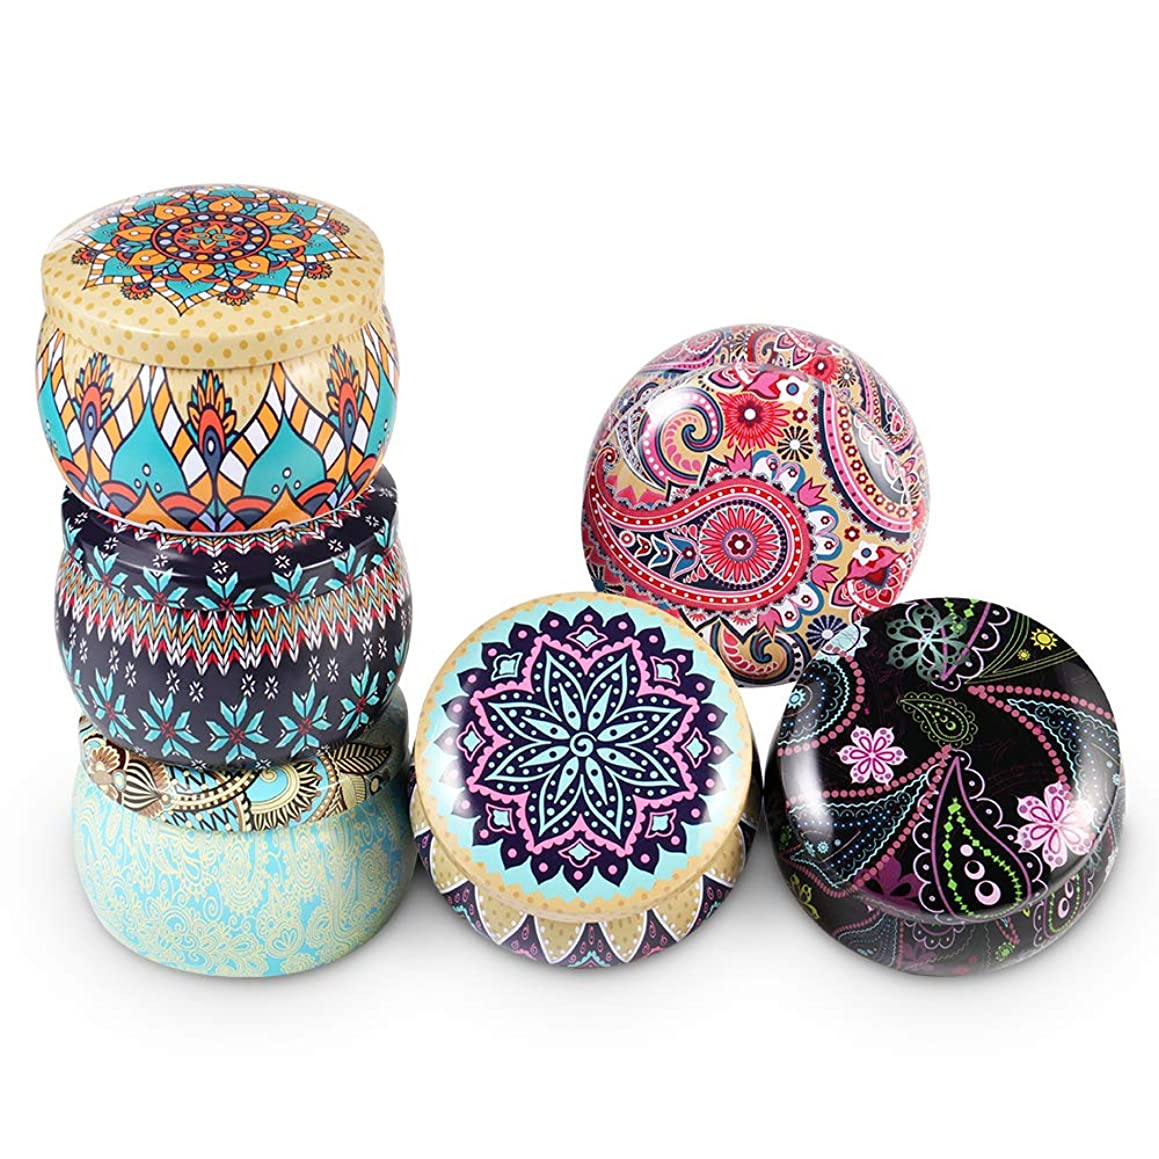 Candle Tin Jars 6pcs Candle Making Containers Round Shape Storage Box Party Favors Vintage Printed Coffee Tea Cans DIY Candle Wax Holder Jewelry Box Home Decorations Box